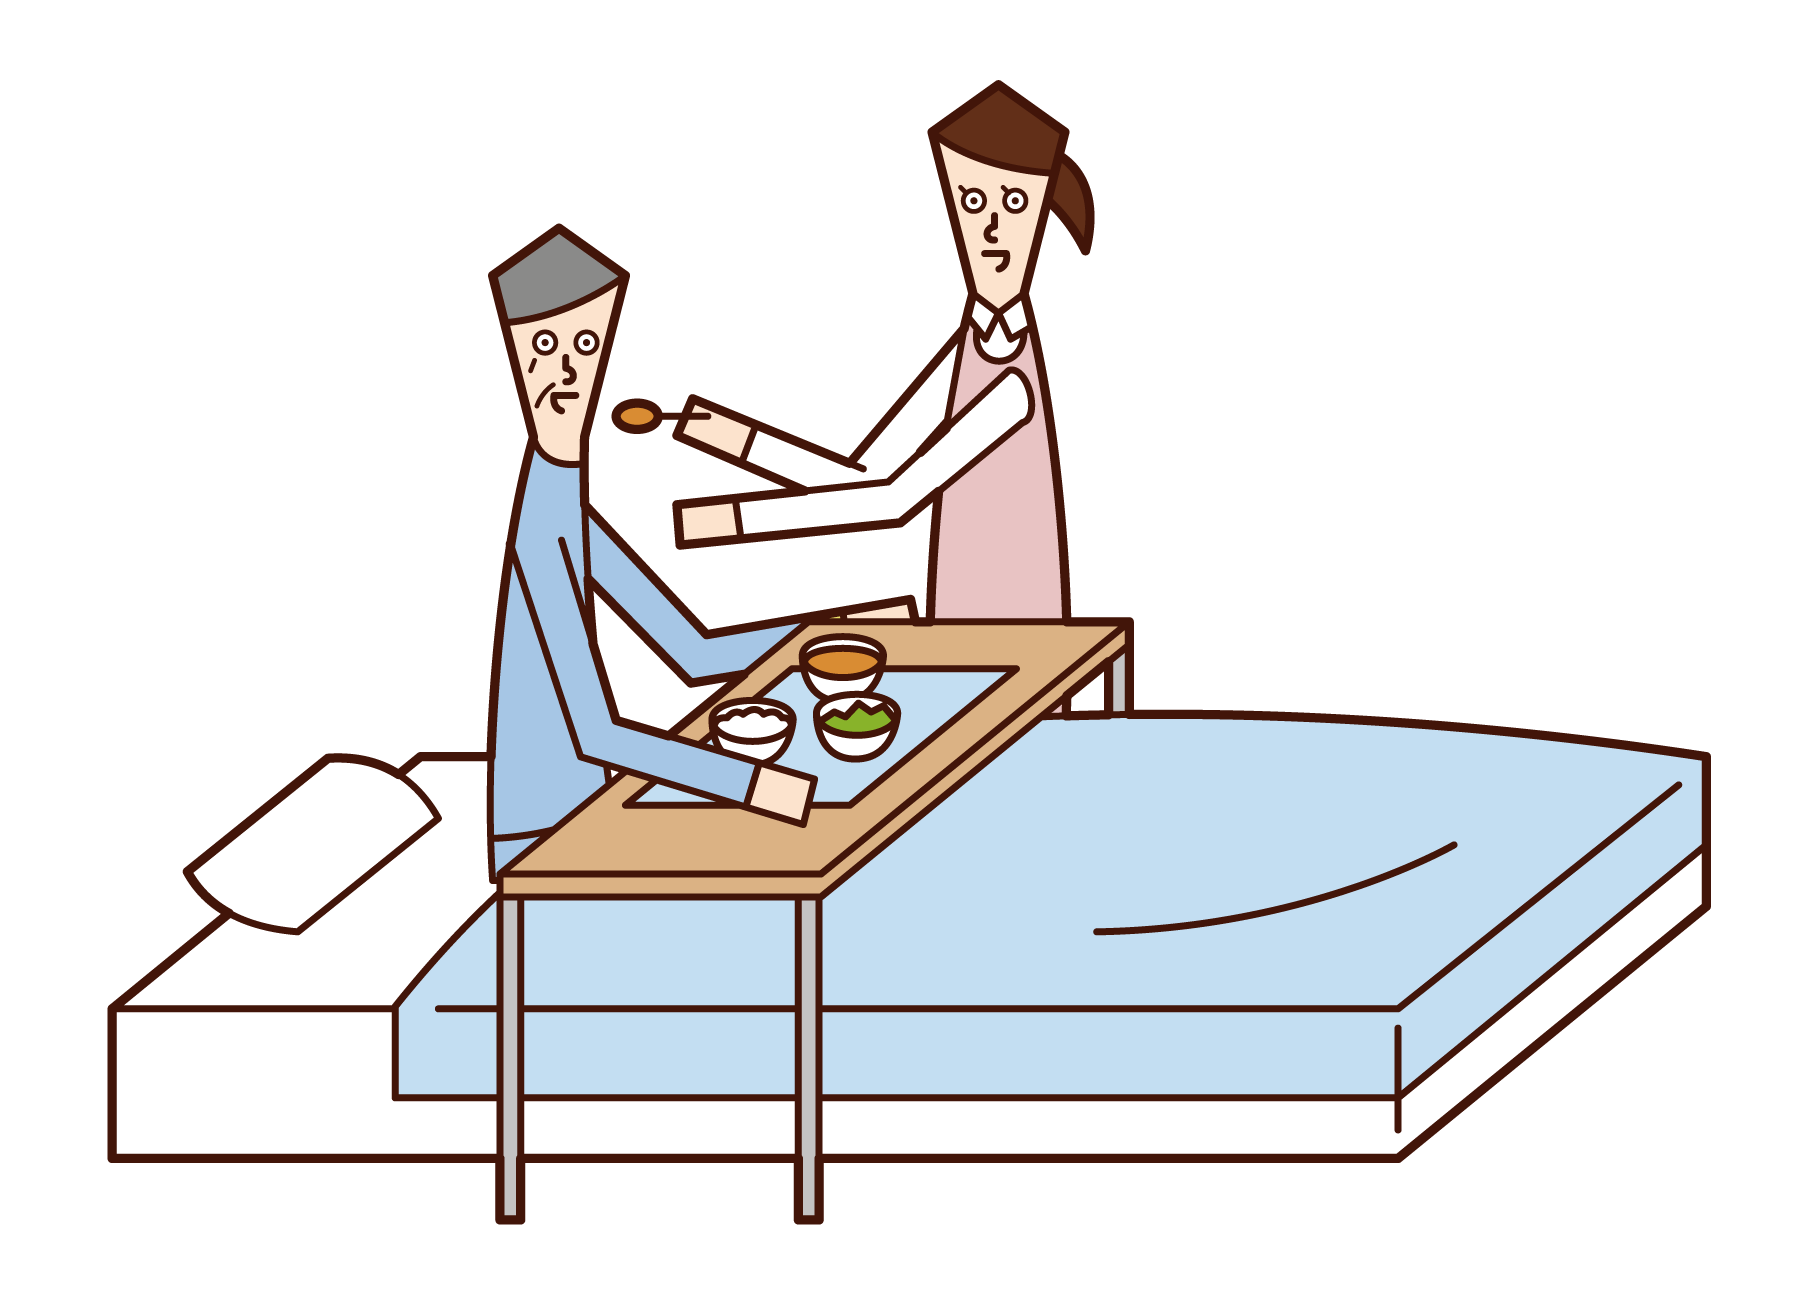 Illustration of a care worker (woman) who assists with meals